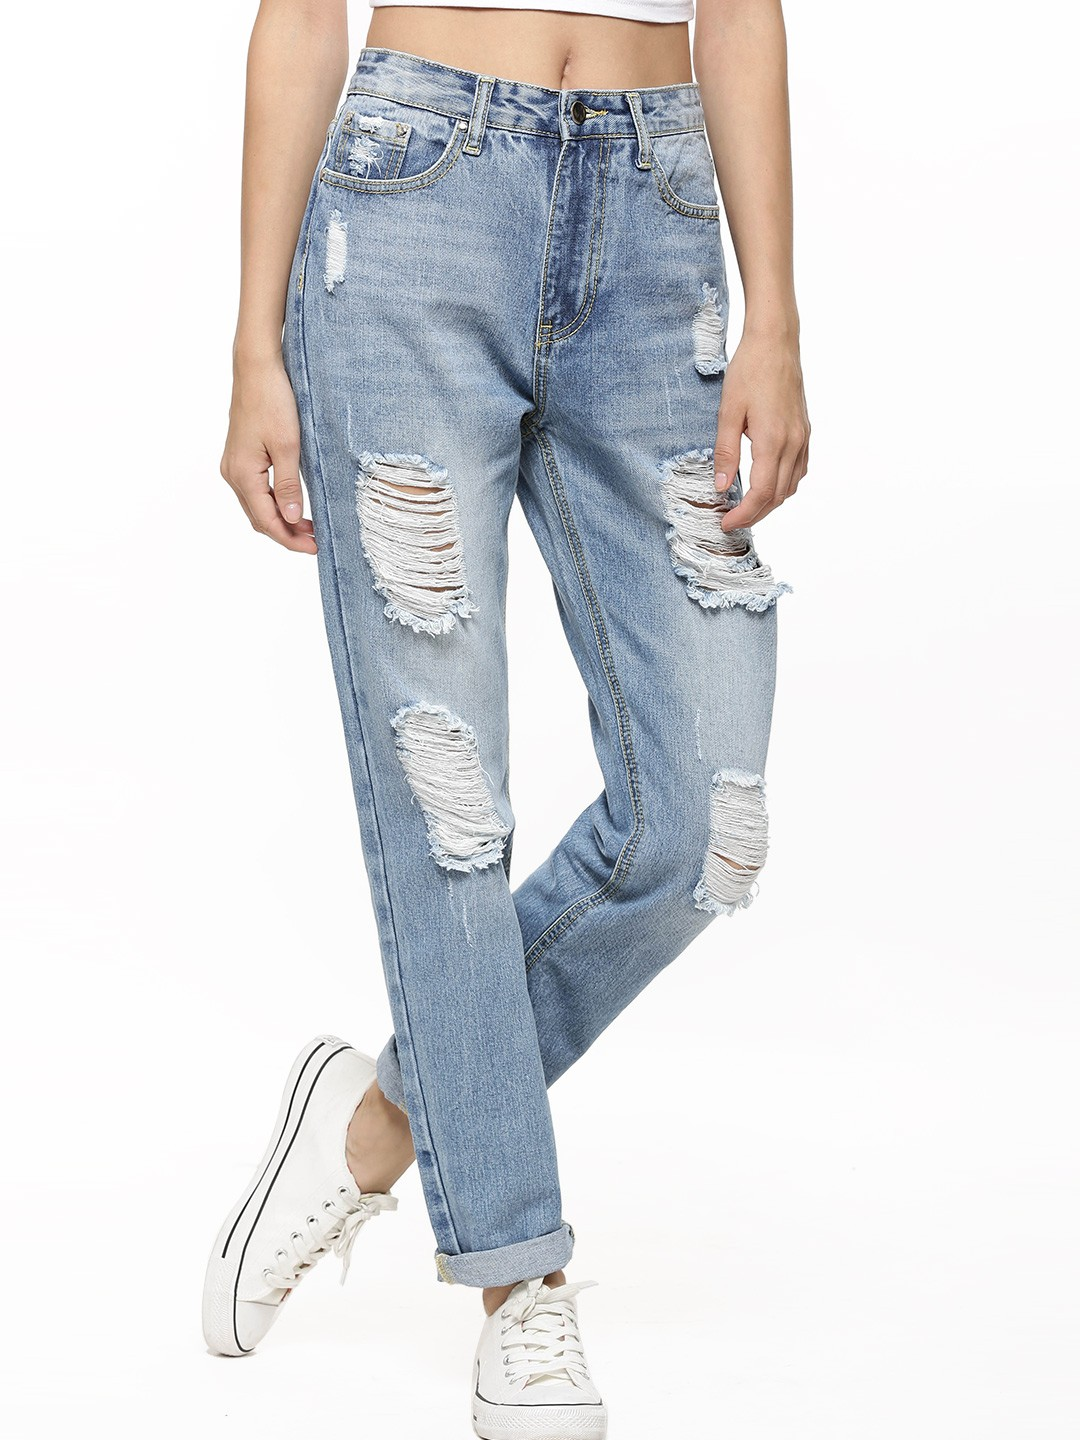 buy momokrom distressed high waist boyfriend jeans for. Black Bedroom Furniture Sets. Home Design Ideas